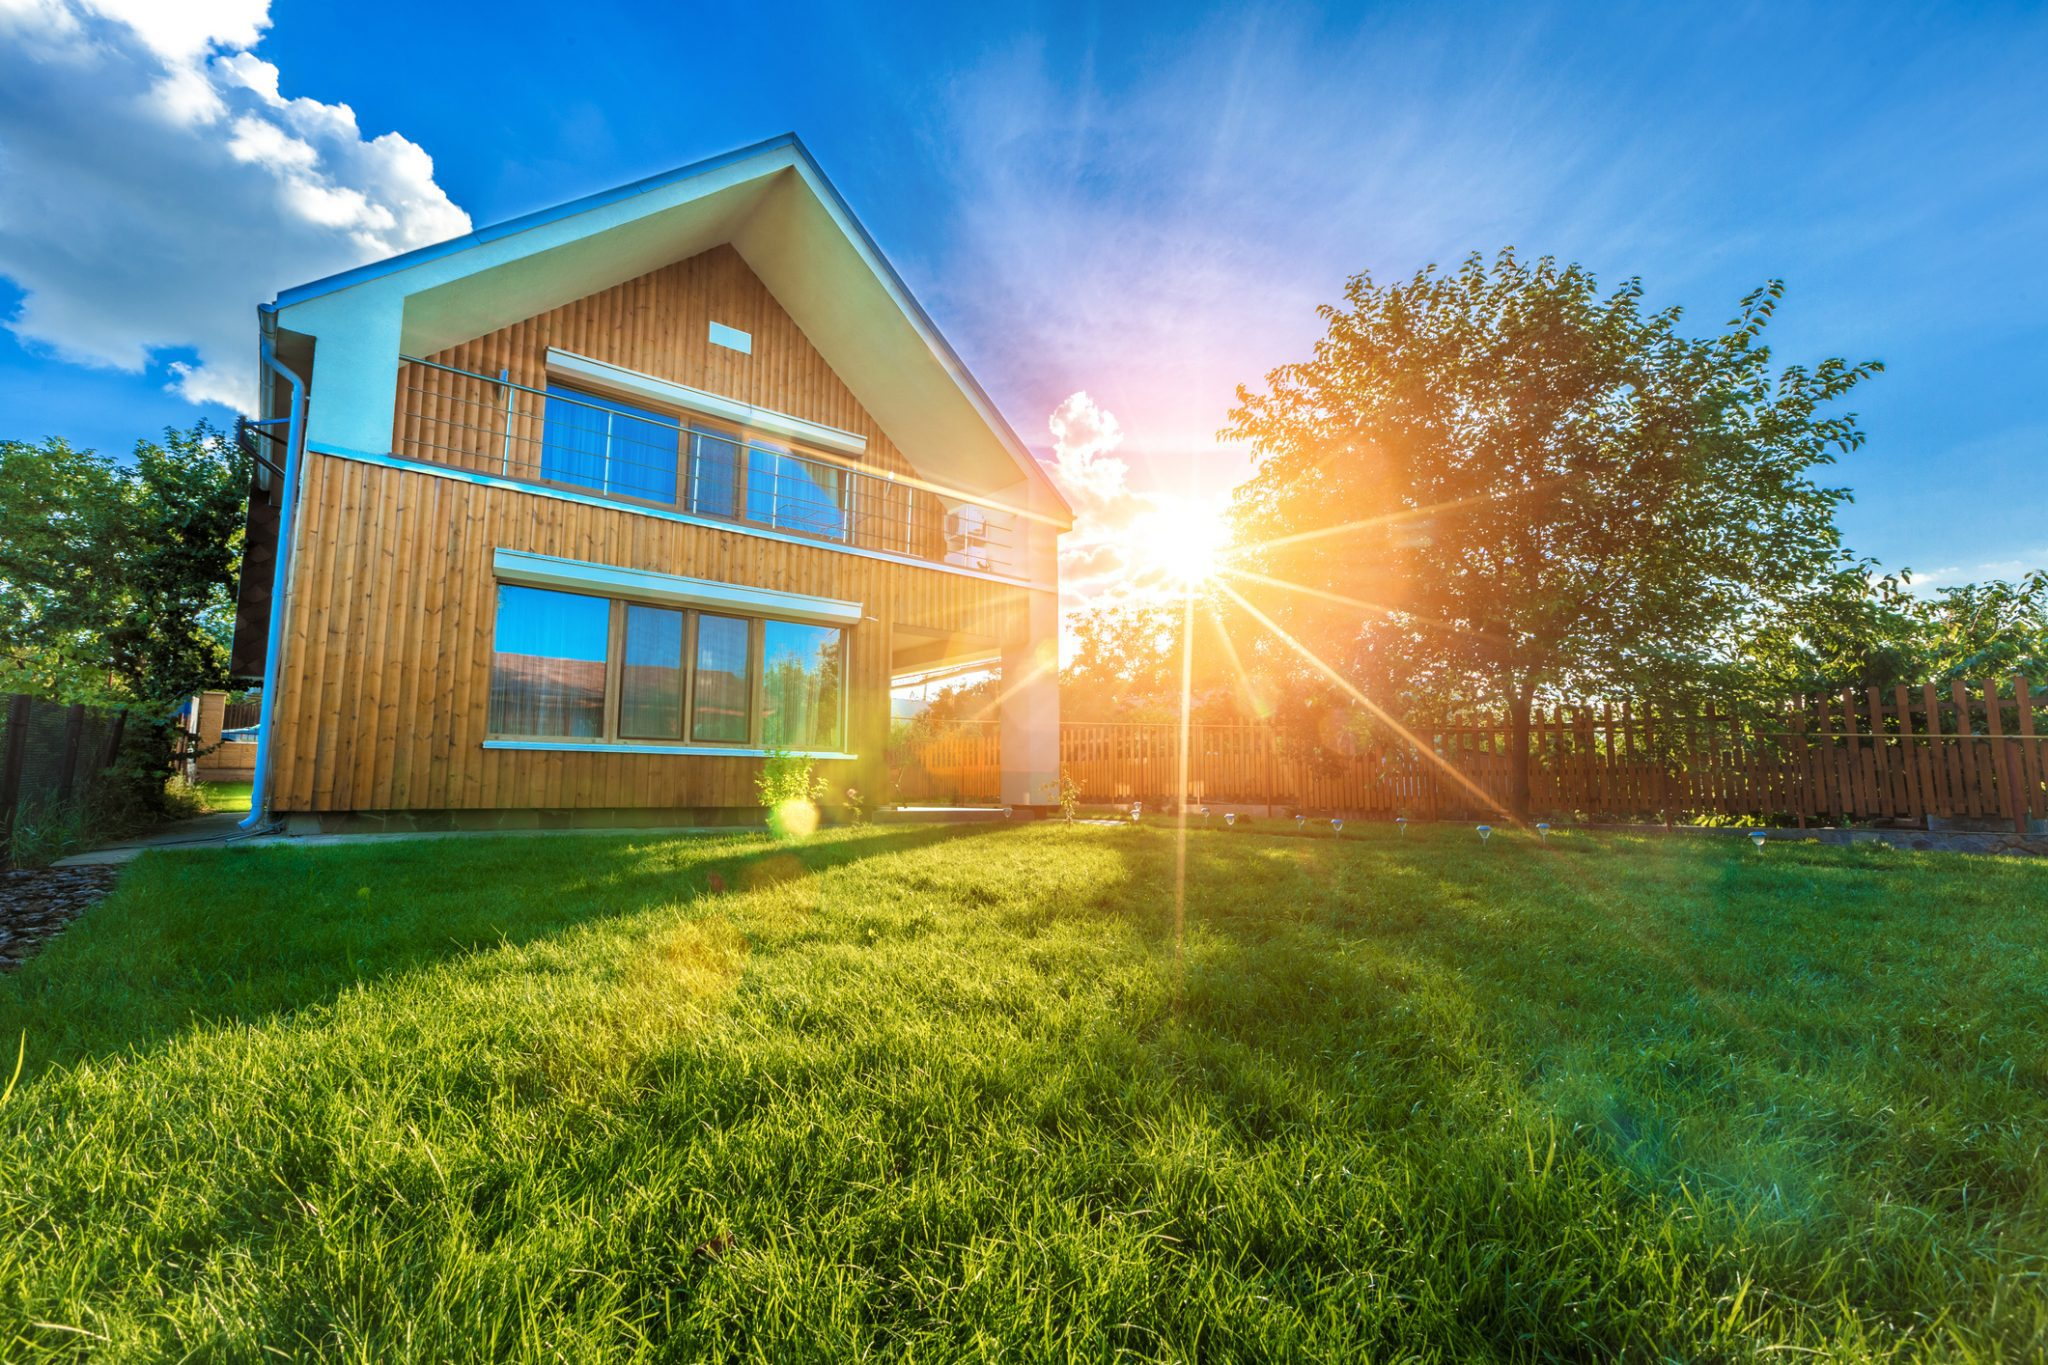 2020 set to be a year for greener, cleaner UK holiday homes